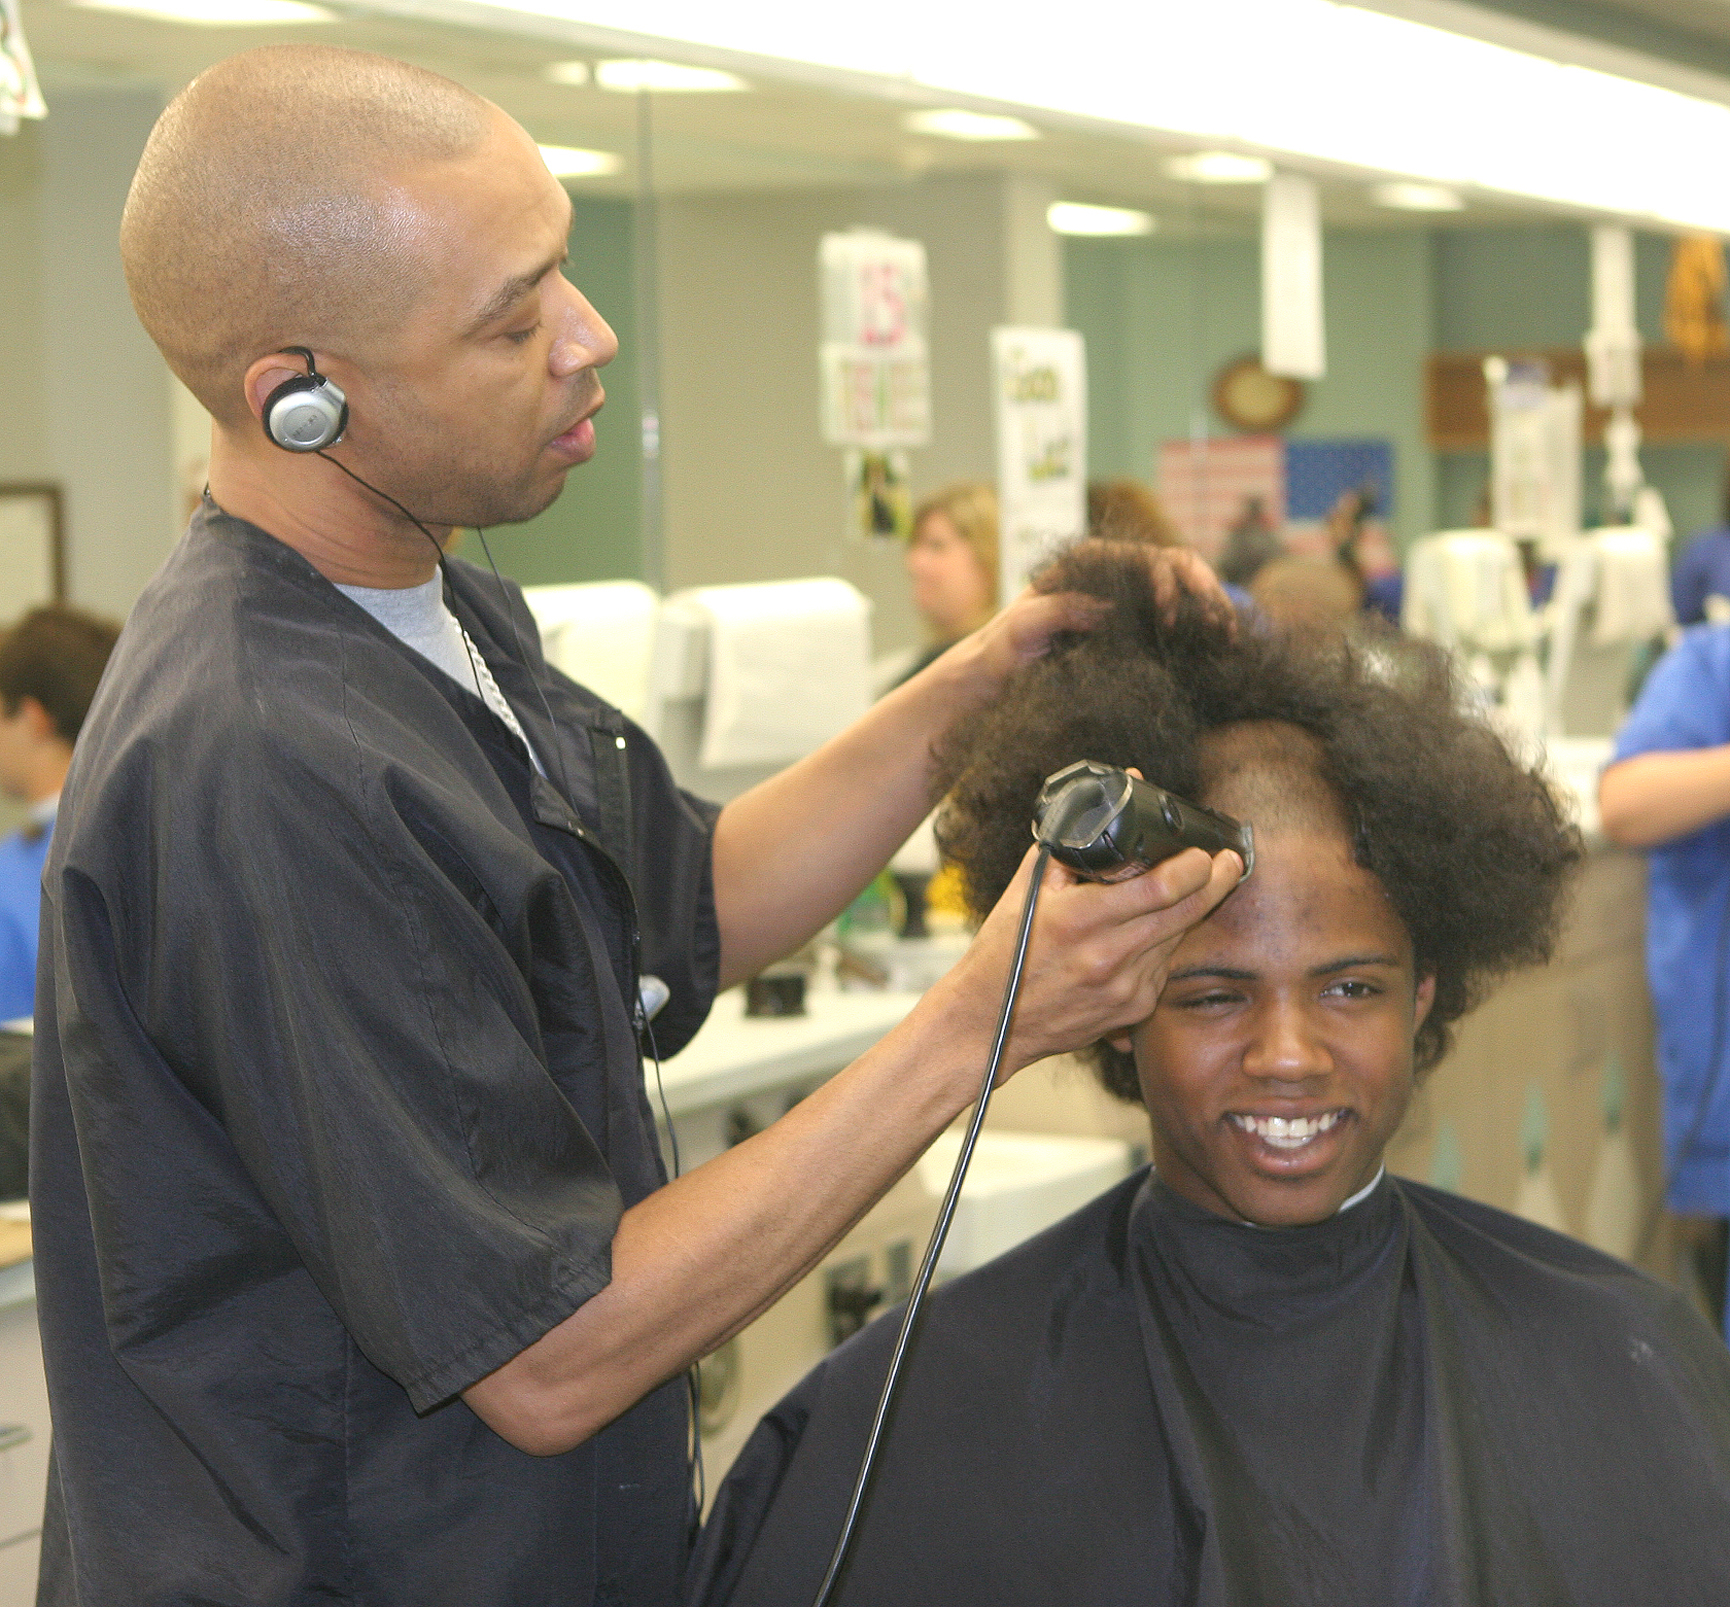 File:Flickr - The U.S. Army - Cadet cut.jpg - Wikimedia Commons